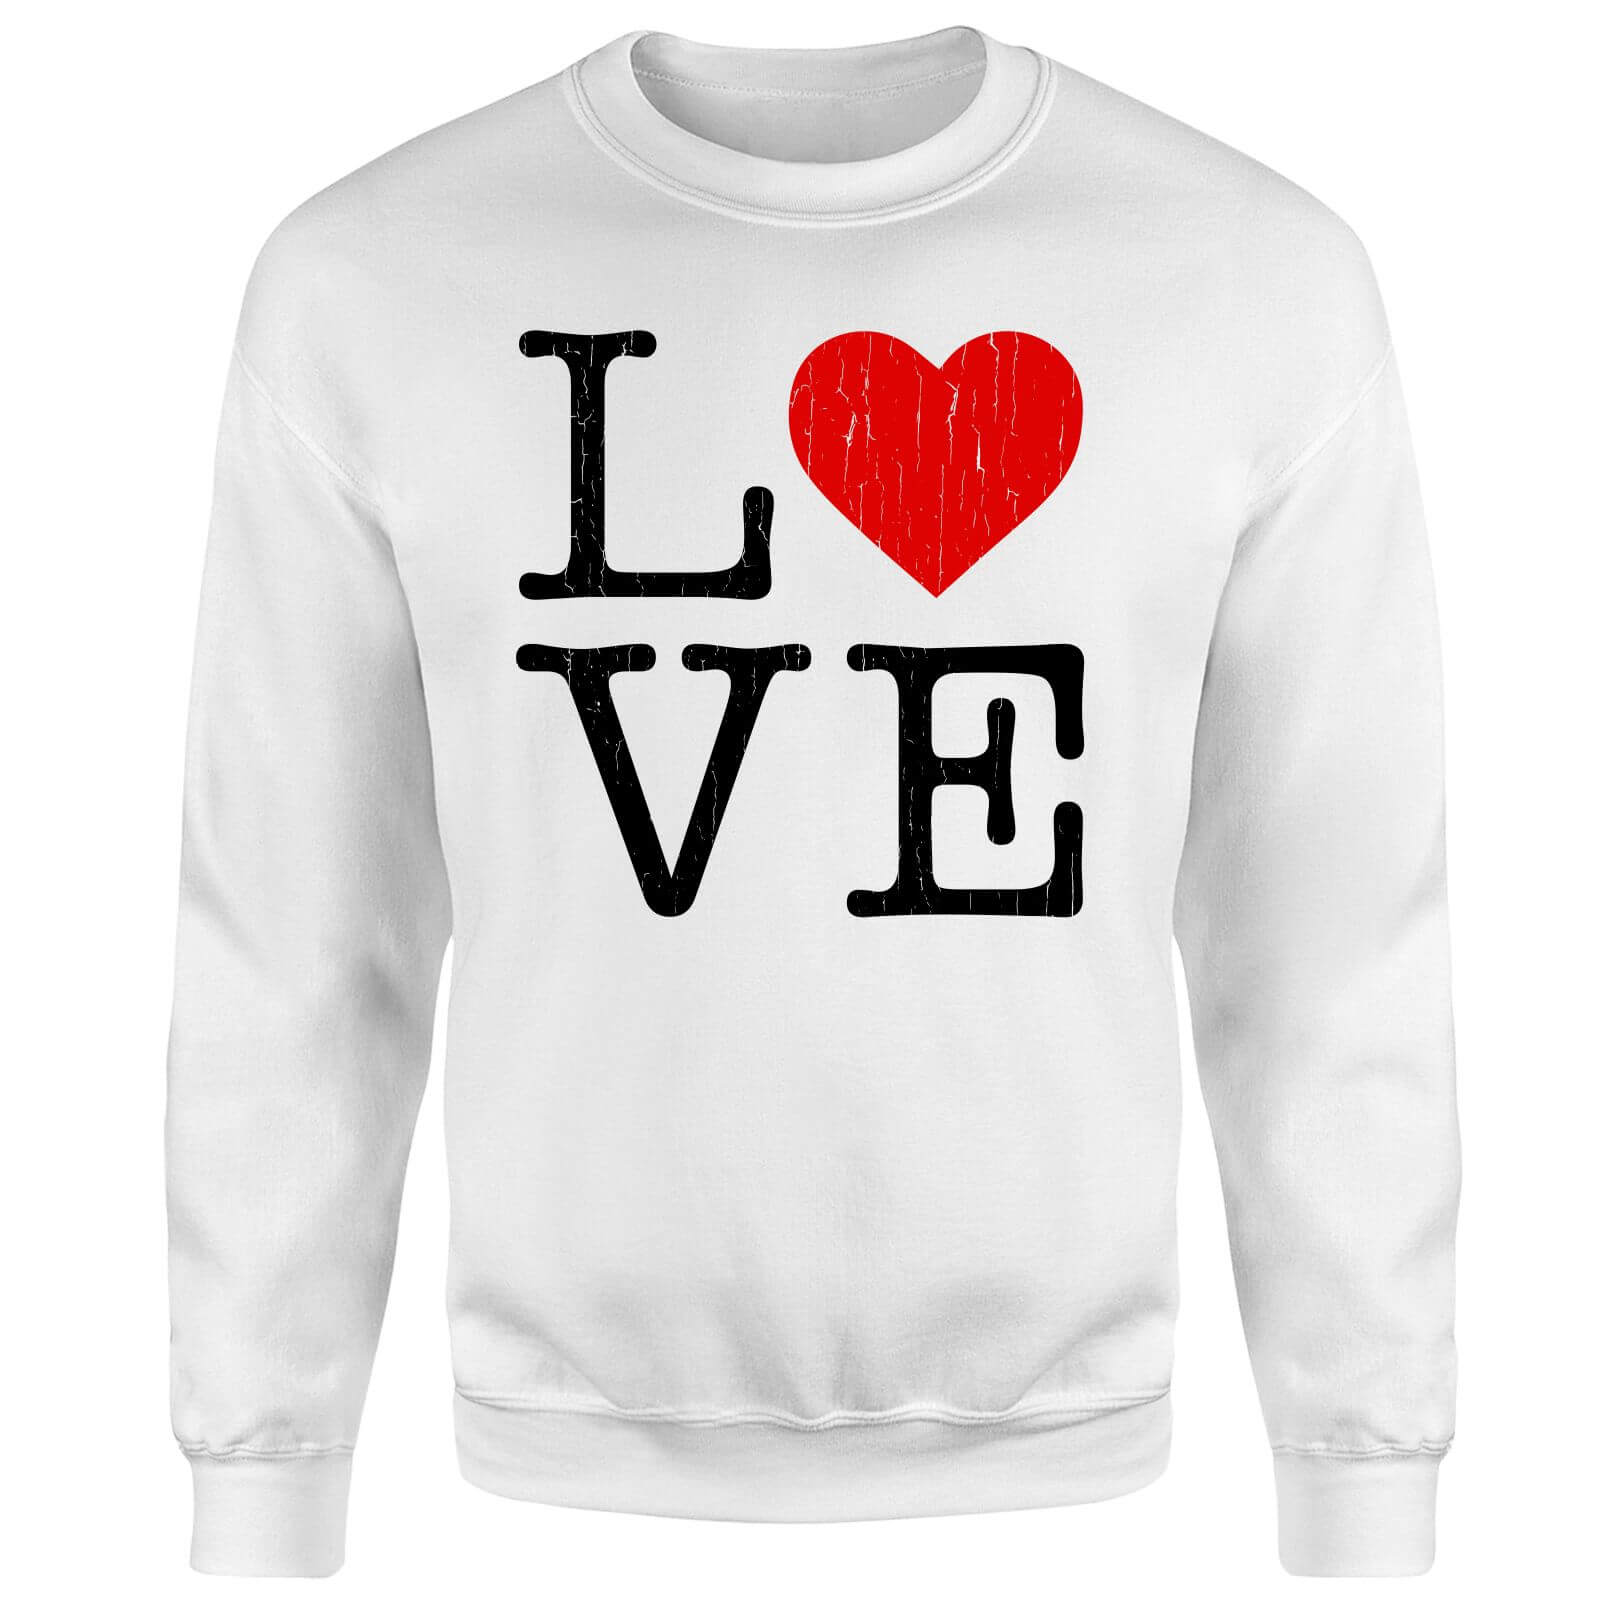 Love Heart Textured Sweatshirt - White